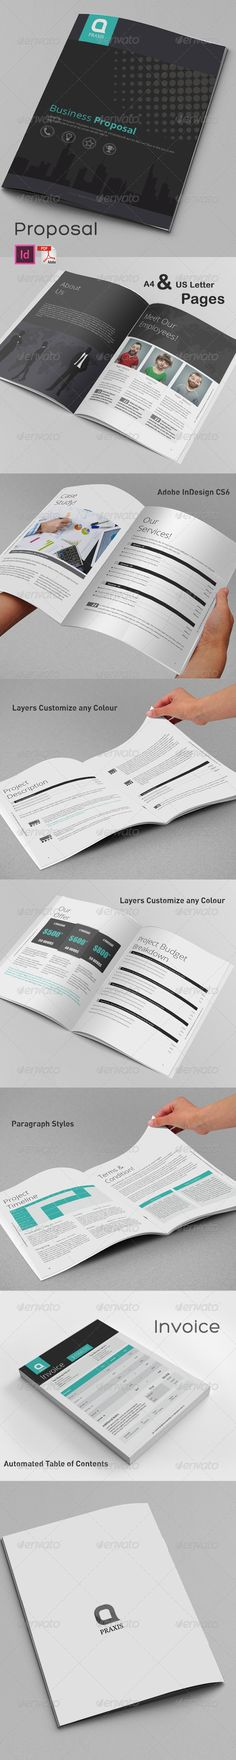 Clean Business Proposal Template Download, Template and Included - business proposal template download